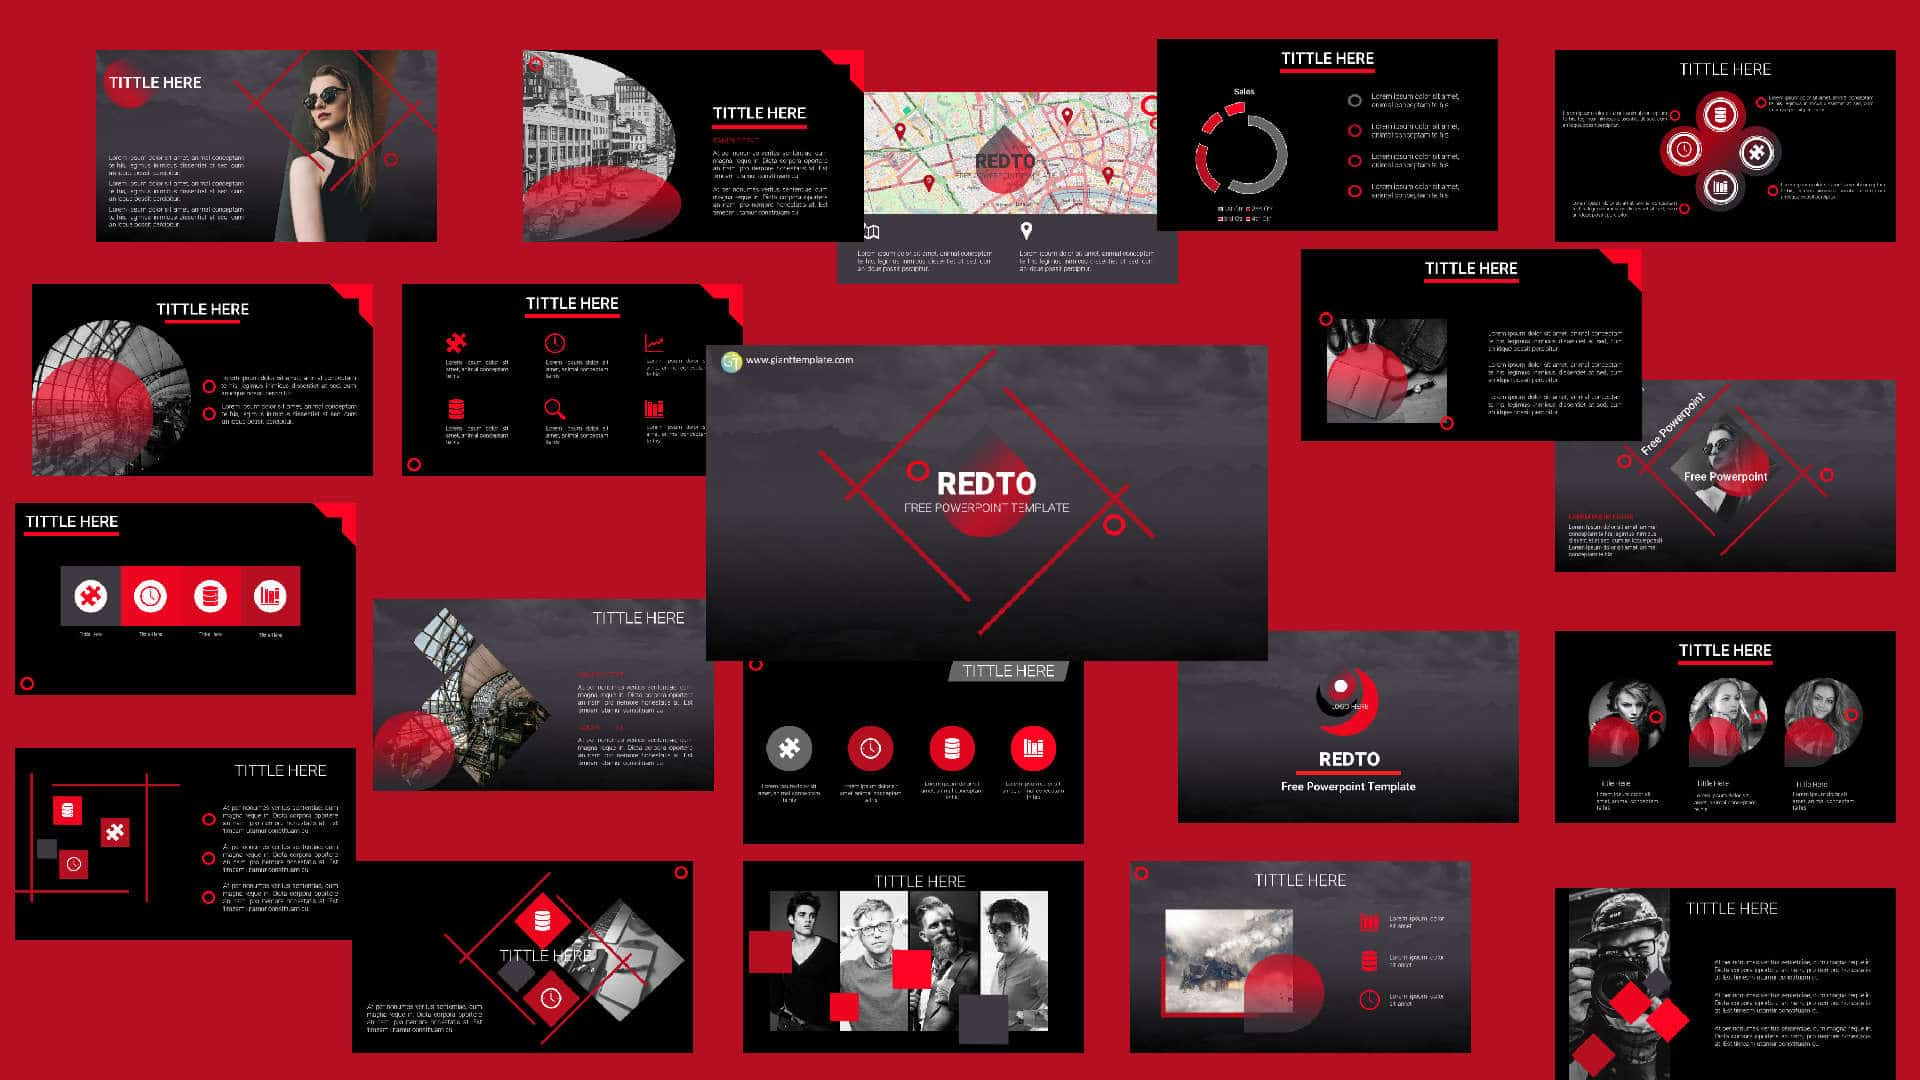 Download Template Powerpoint Free 50 Slide Free Powerpoint Templates Download Template Ptt